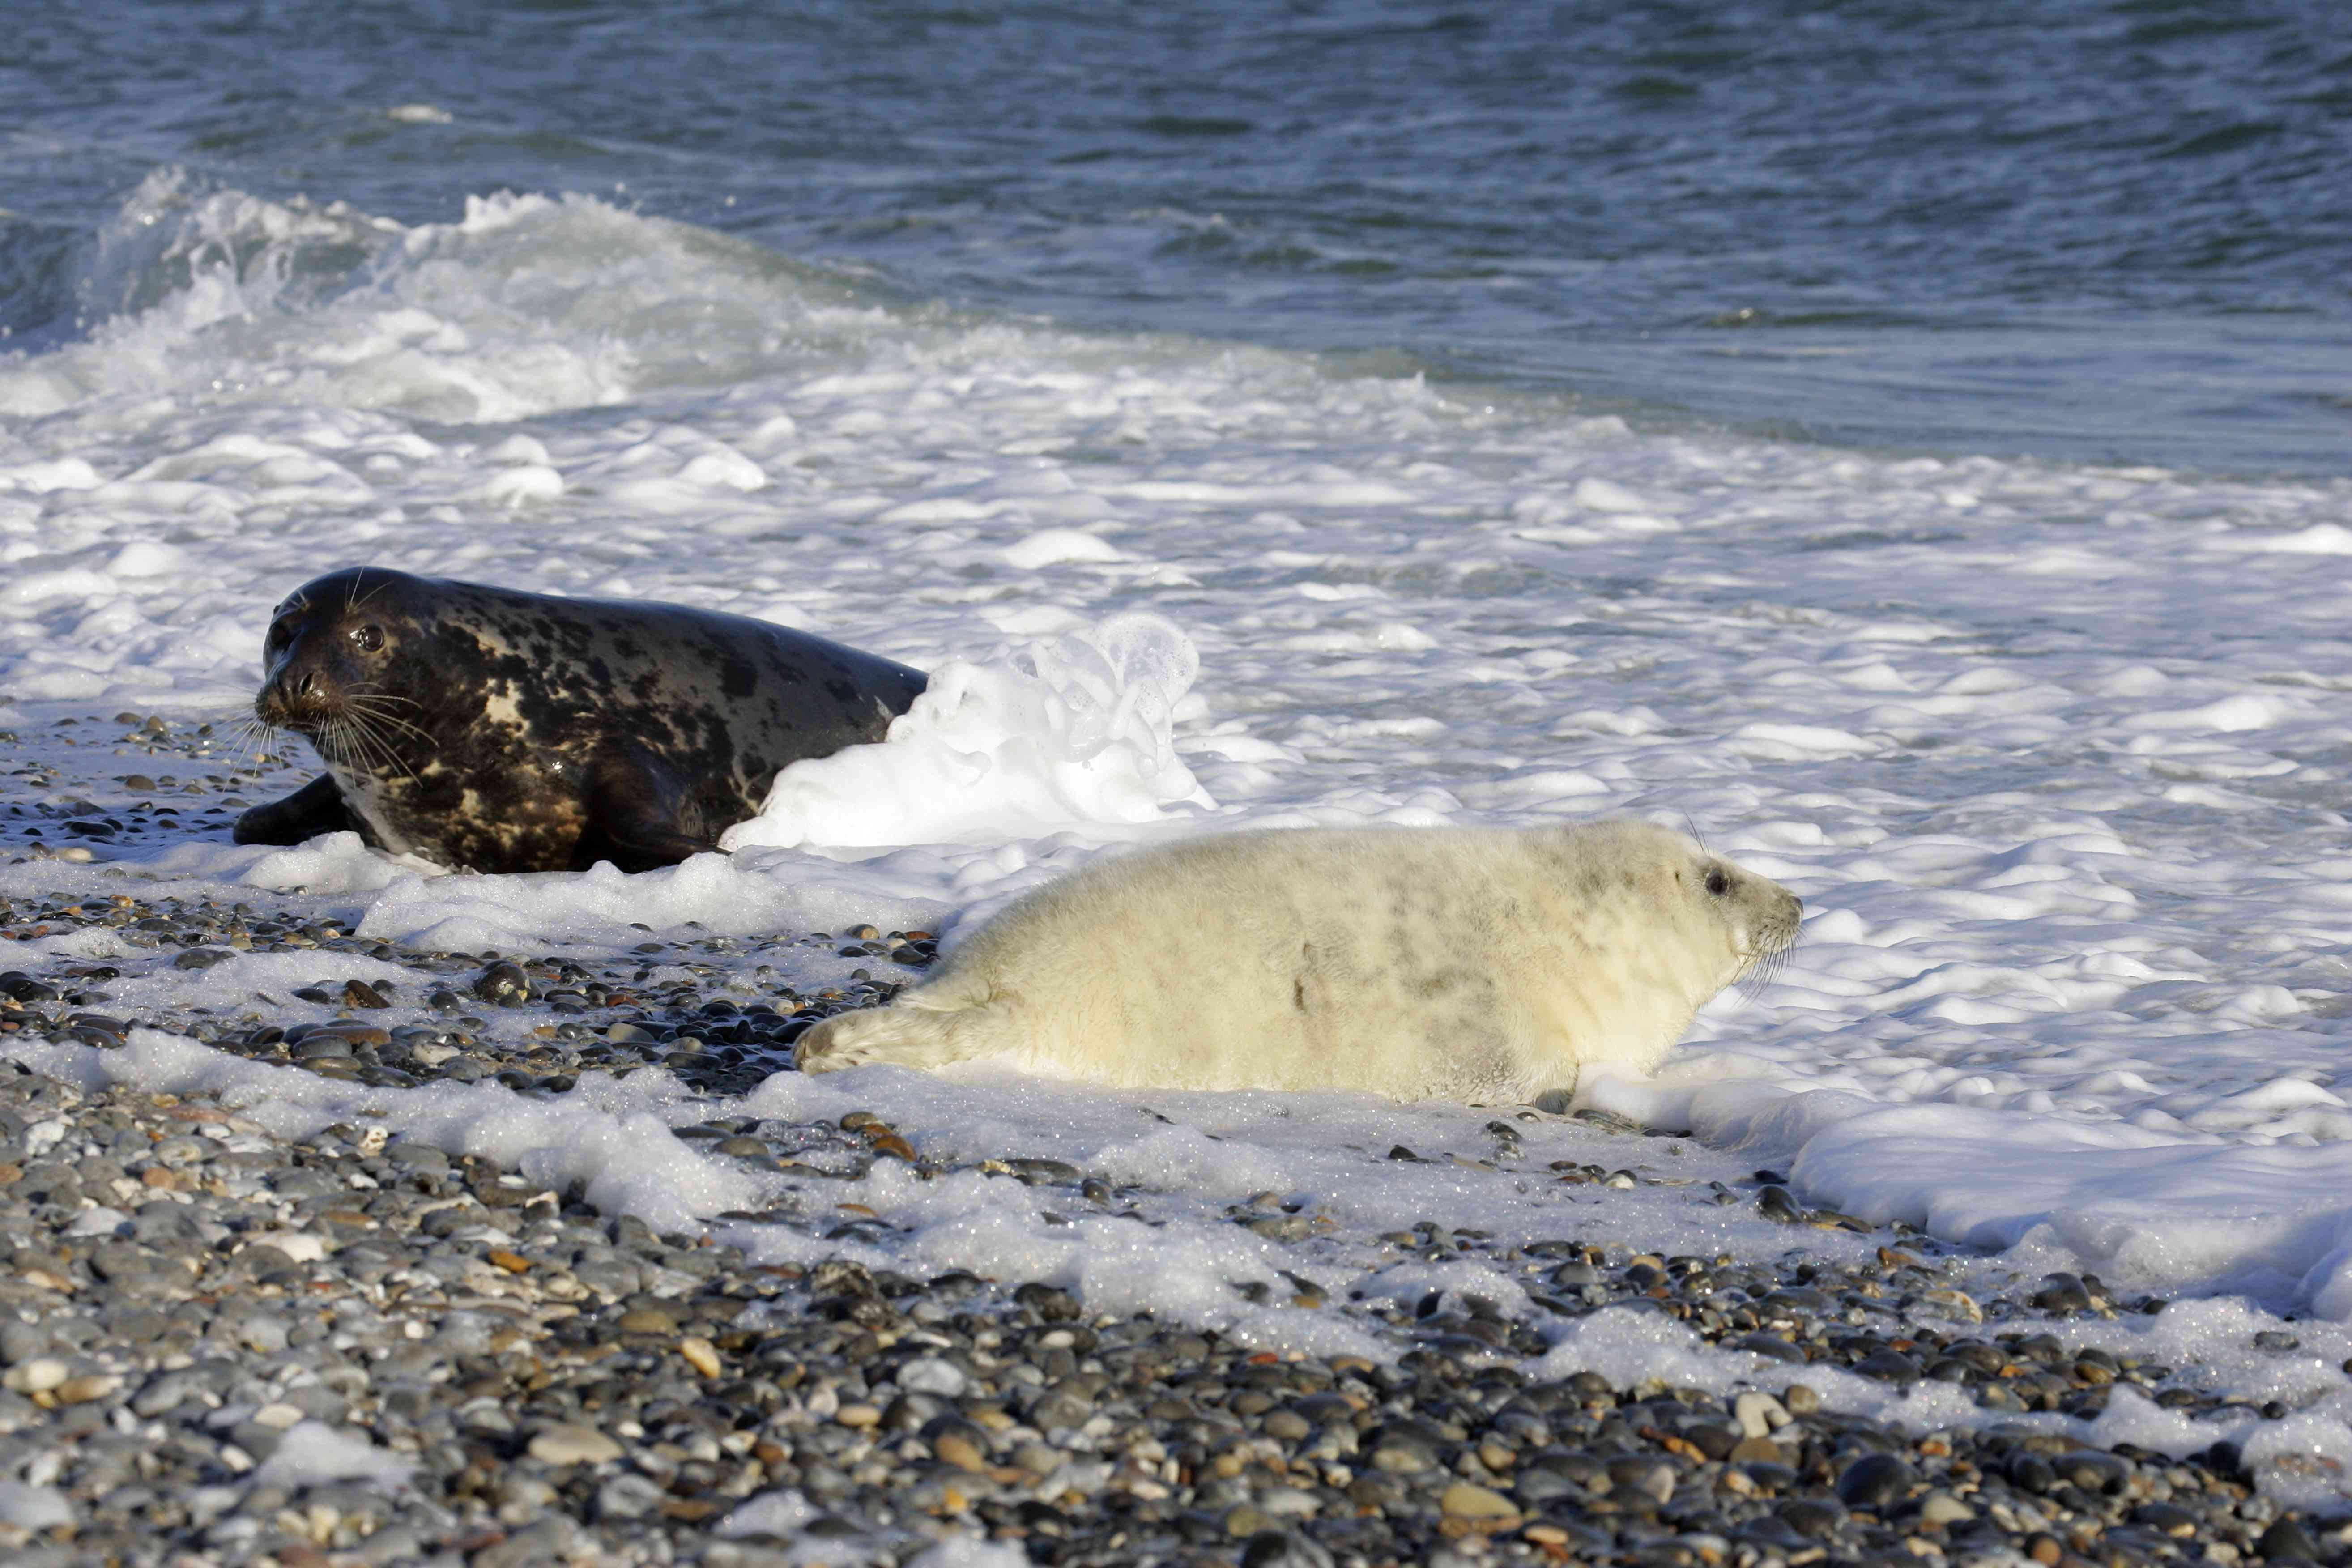 Gray seal baby and its mother in the background at the beach (Halichoerus grypus)